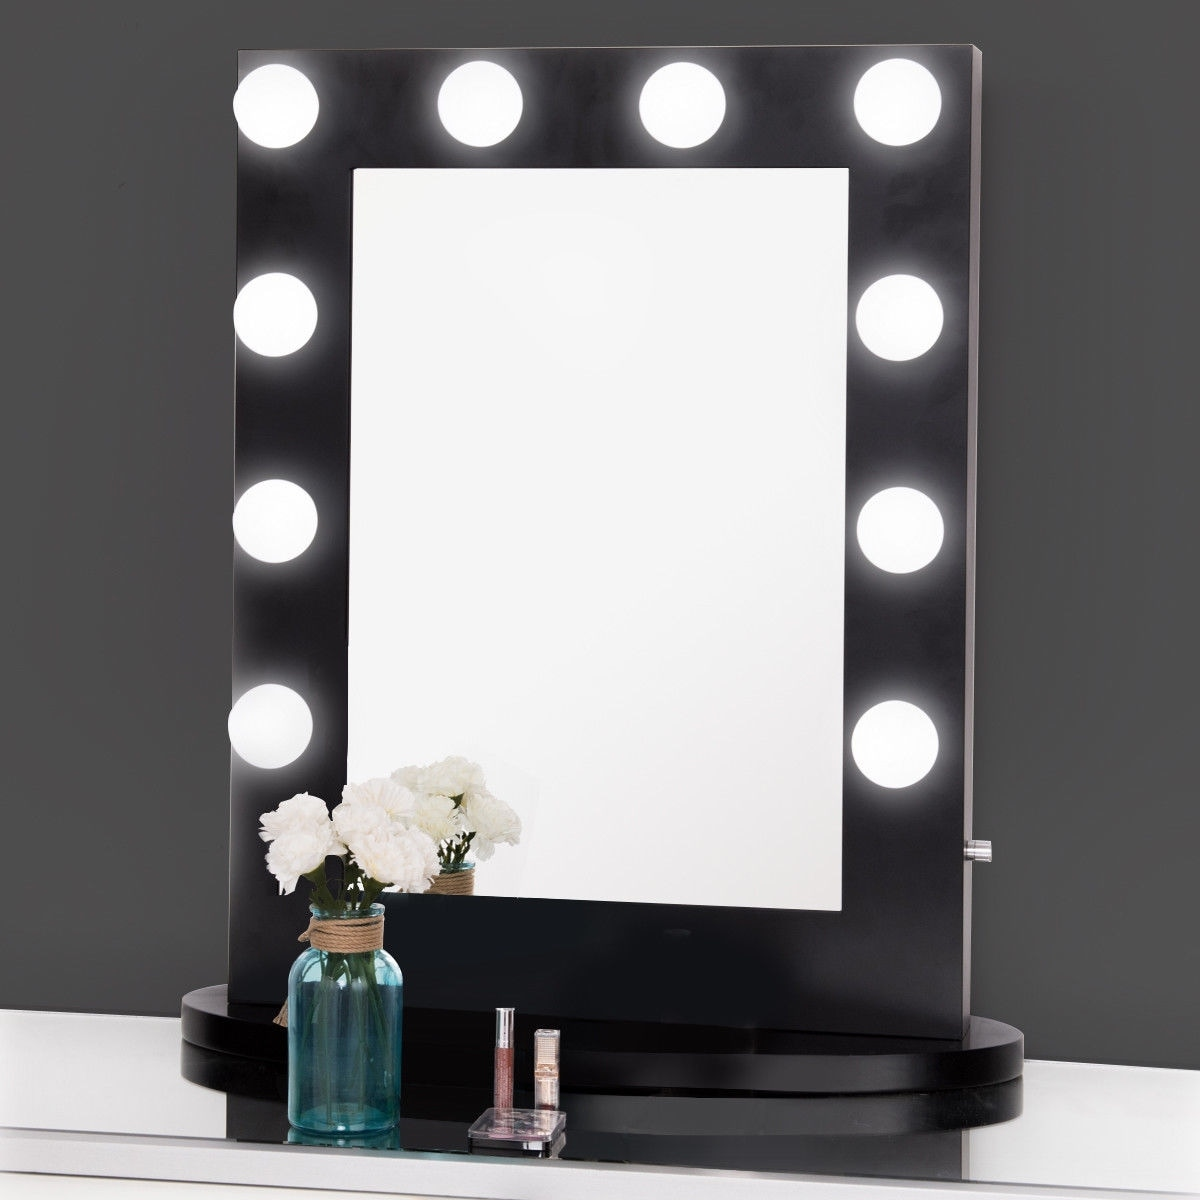 Gymax Hollywood Makeup Vanity Mirror Lighted Tabletops Dimmer Led Illuminated Black